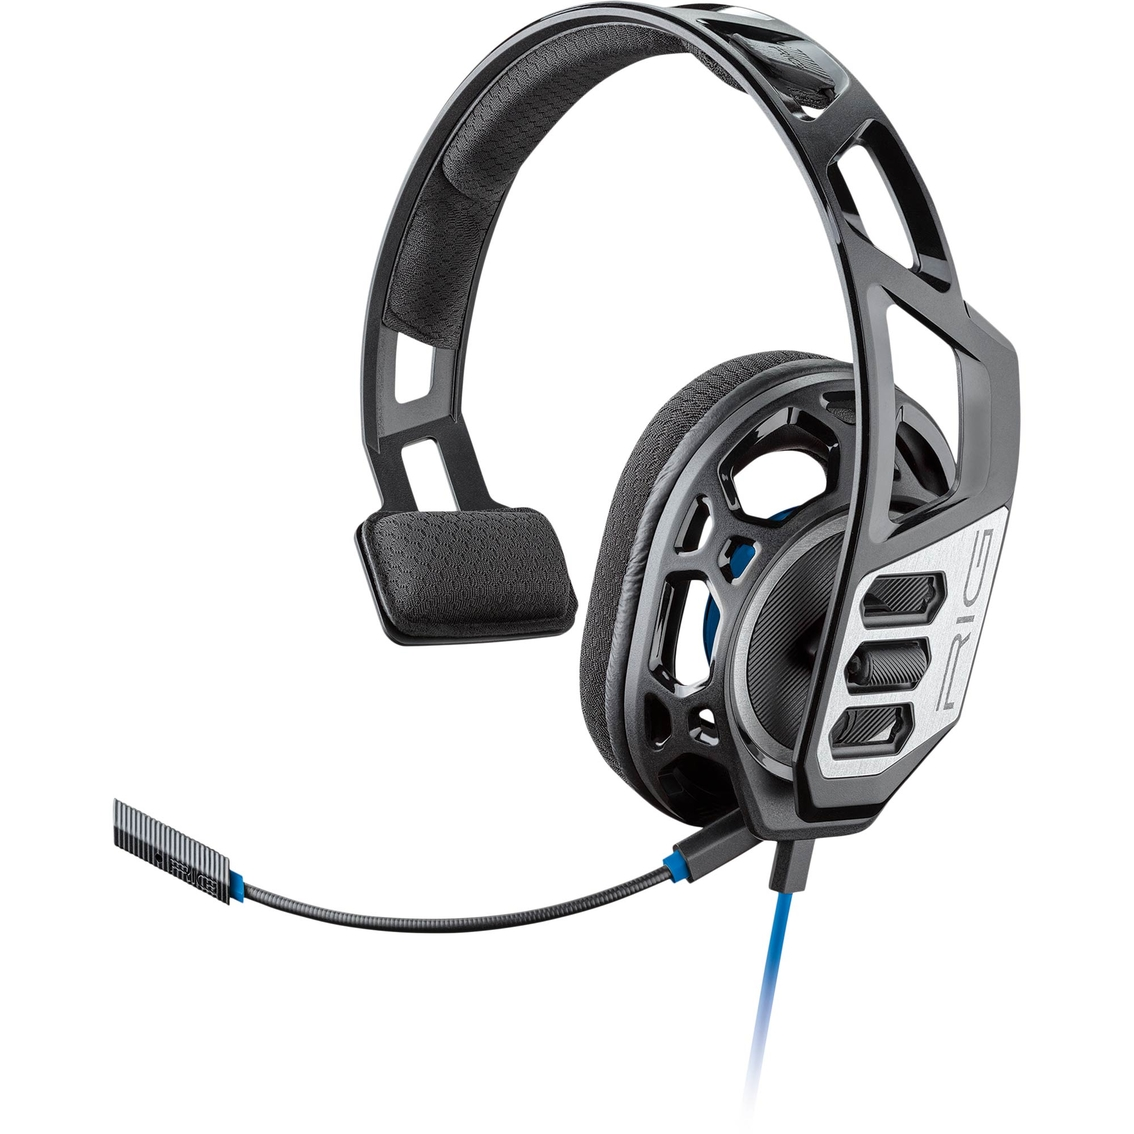 Plantronics Rig 100hs Headset For Ps4 Ps4 Accessories Electronics Shop The Exchange